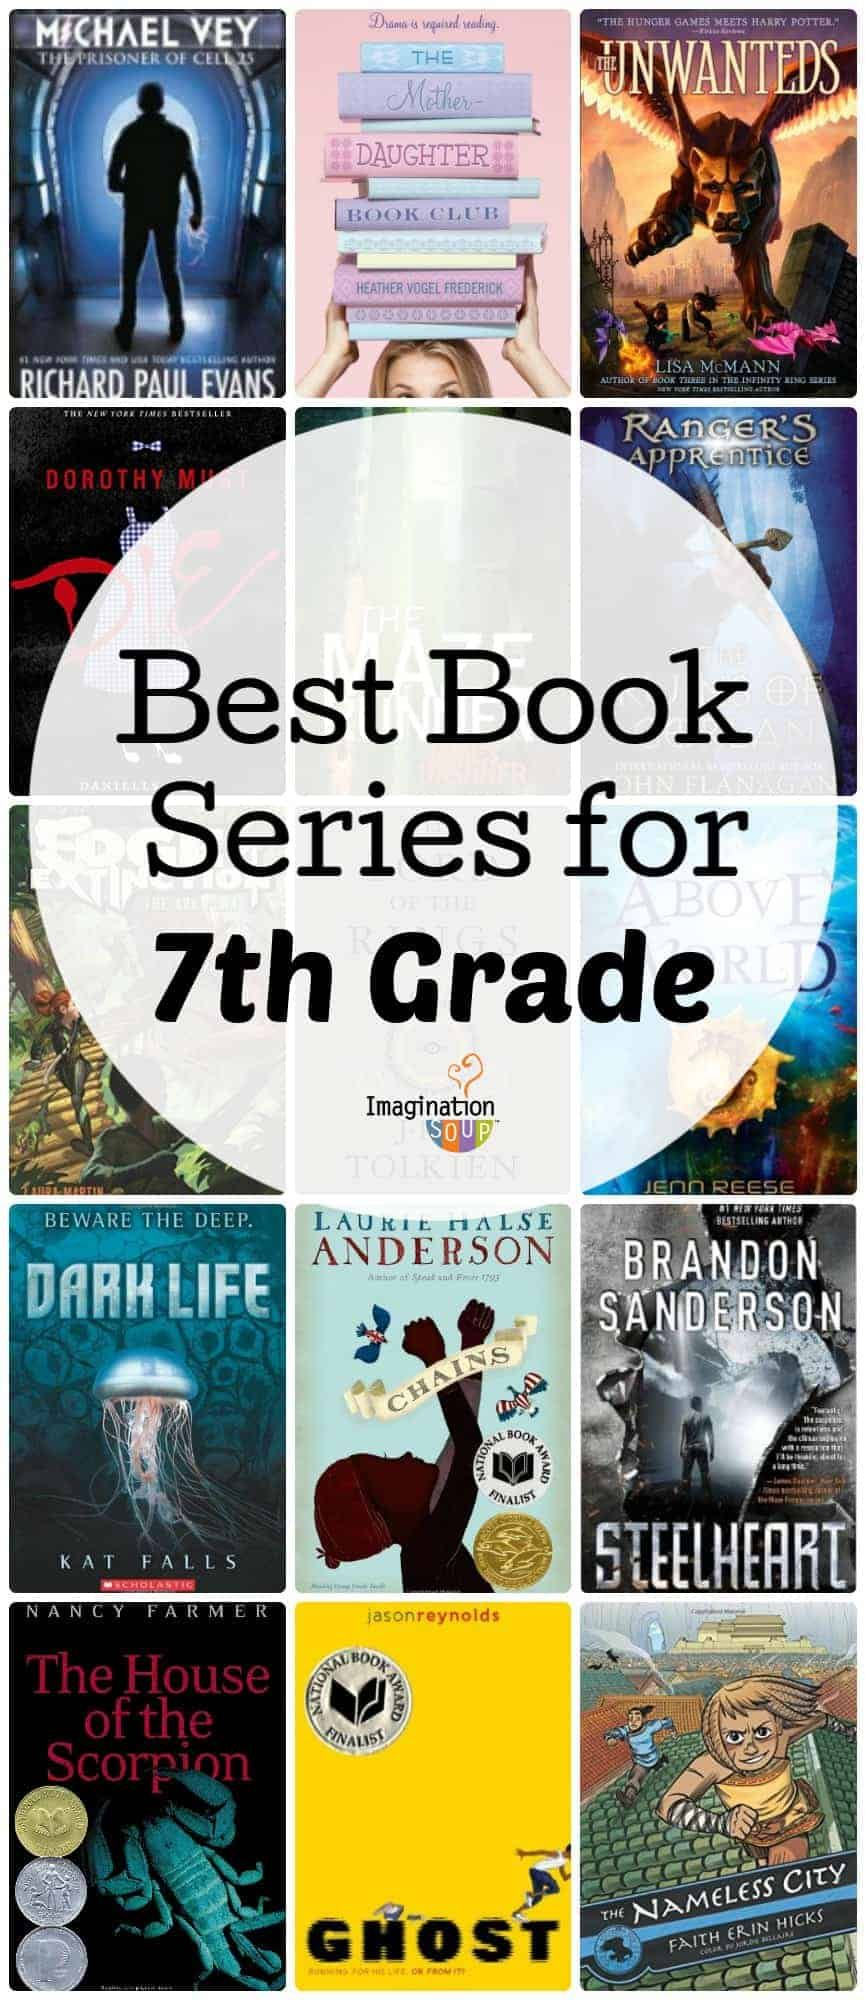 Best Book Series for 12th Graders 12 Year Olds   Imagination Soup ...